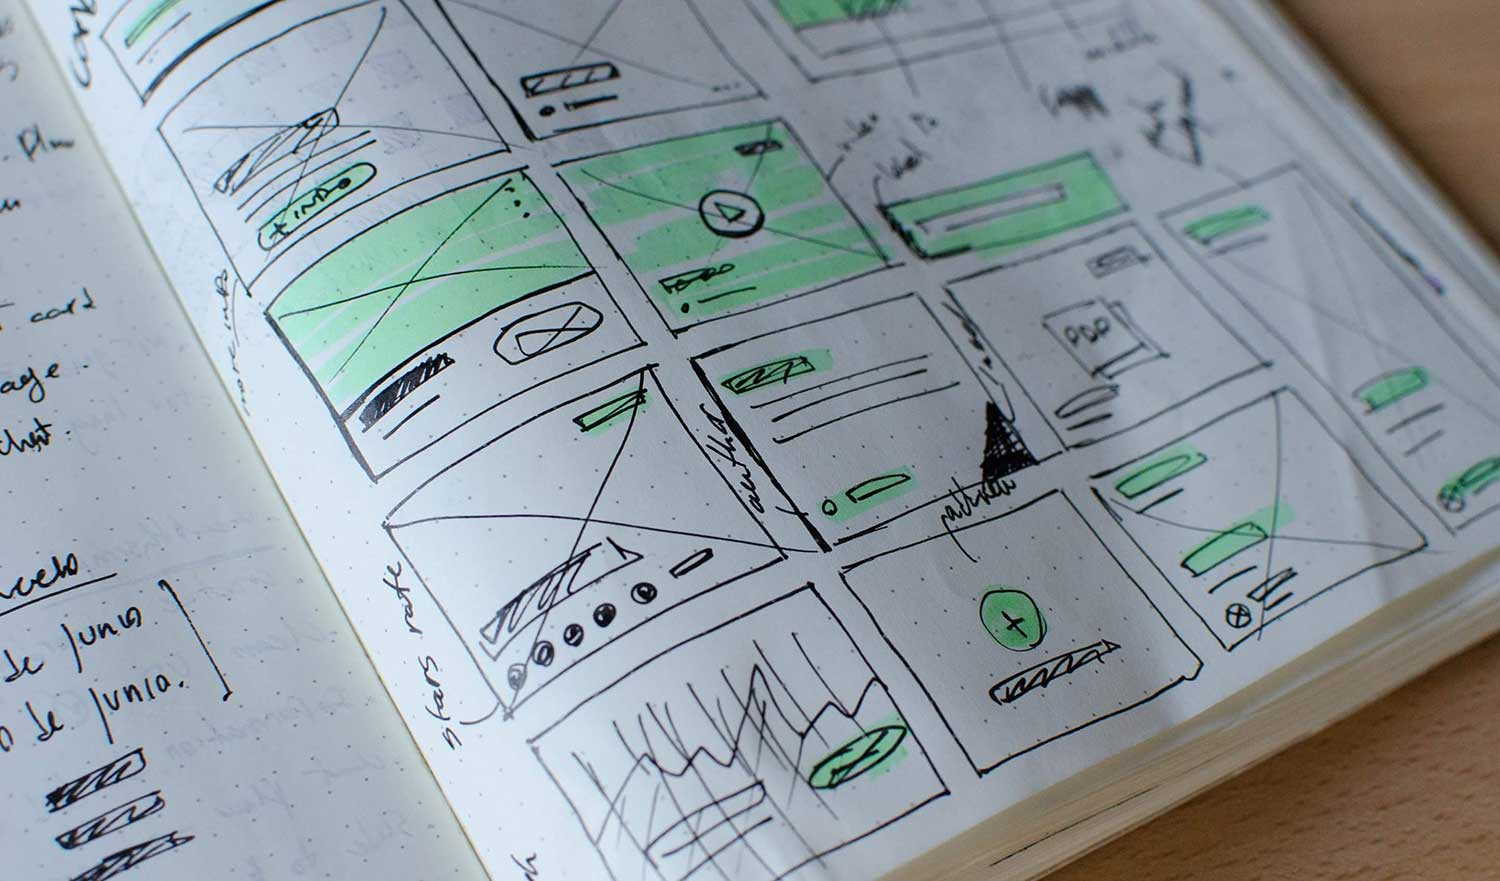 Sketch book with user experience drawings for web application